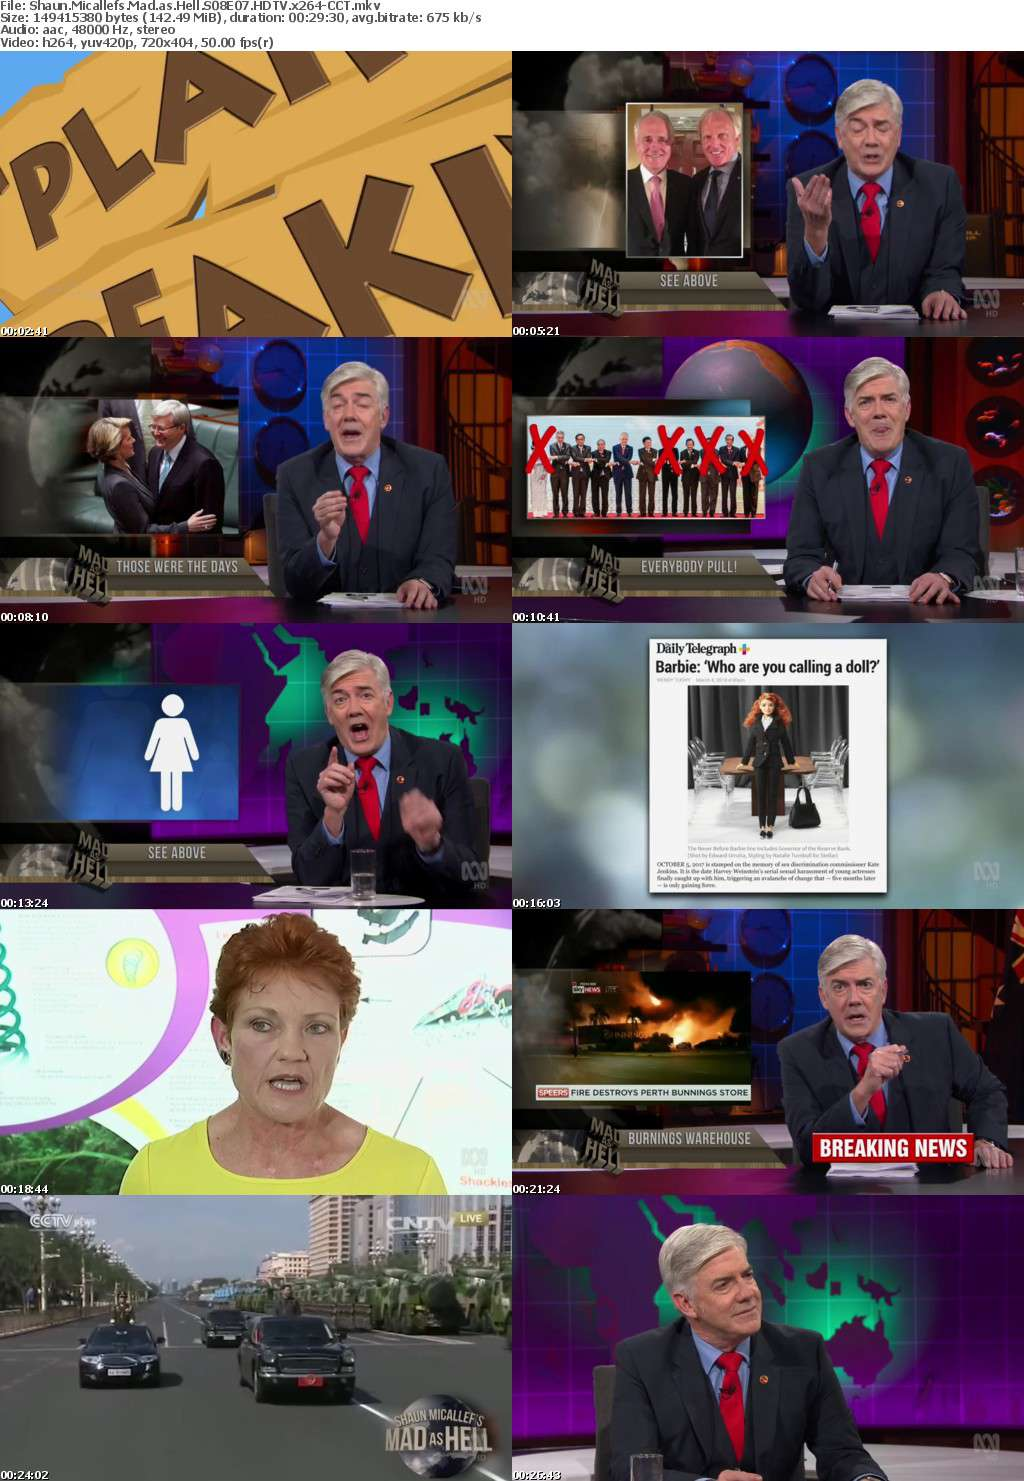 Shaun Micallefs Mad as Hell S08E07 HDTV x264-CCT